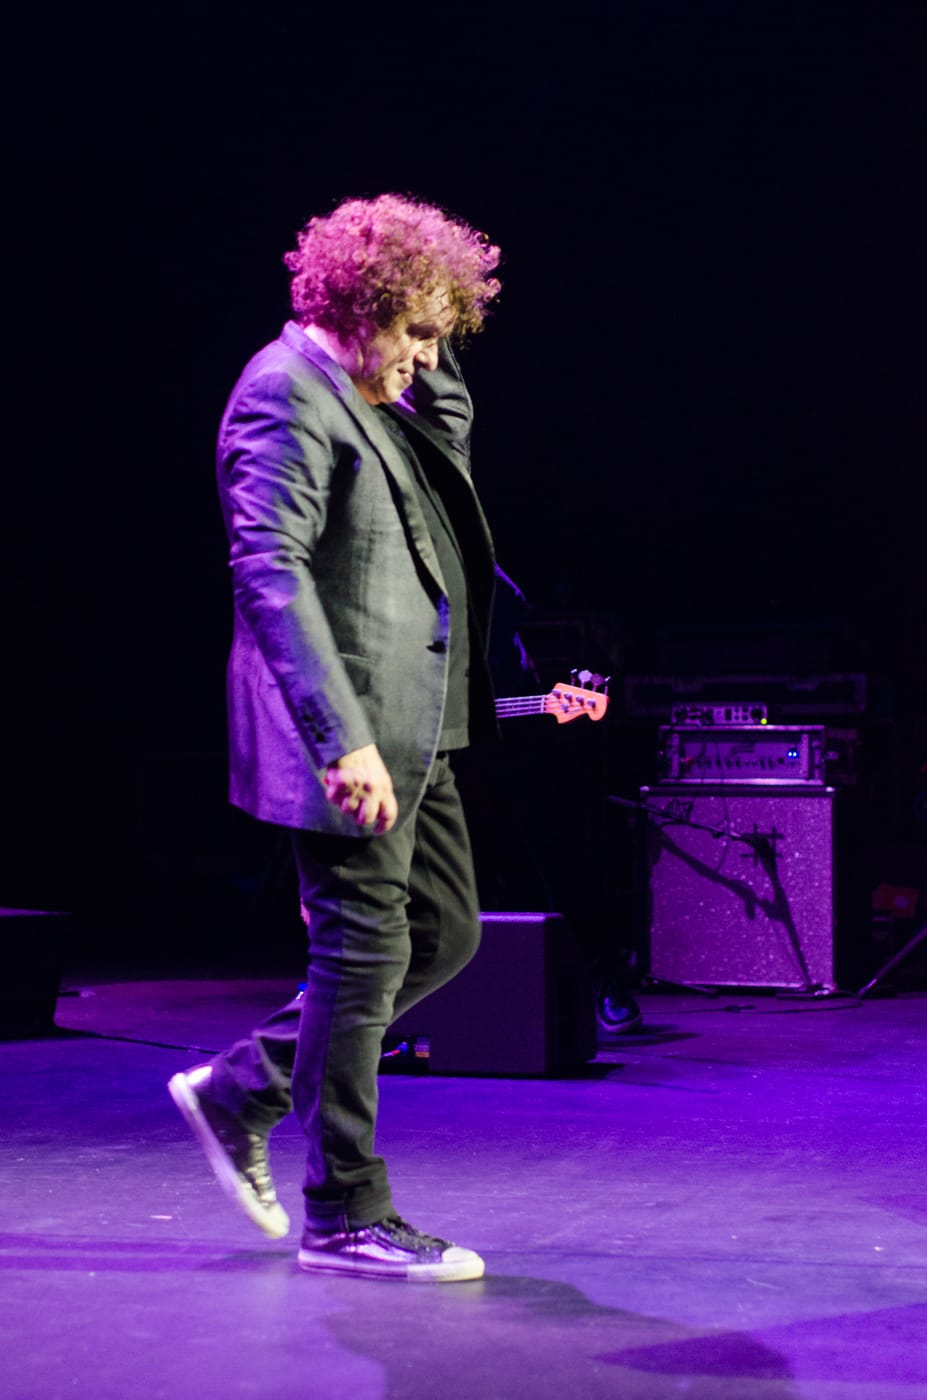 Leo Sayer at Bord Gais Energy Theatre by Sean Smyth (16-10-15) (107 of 129)